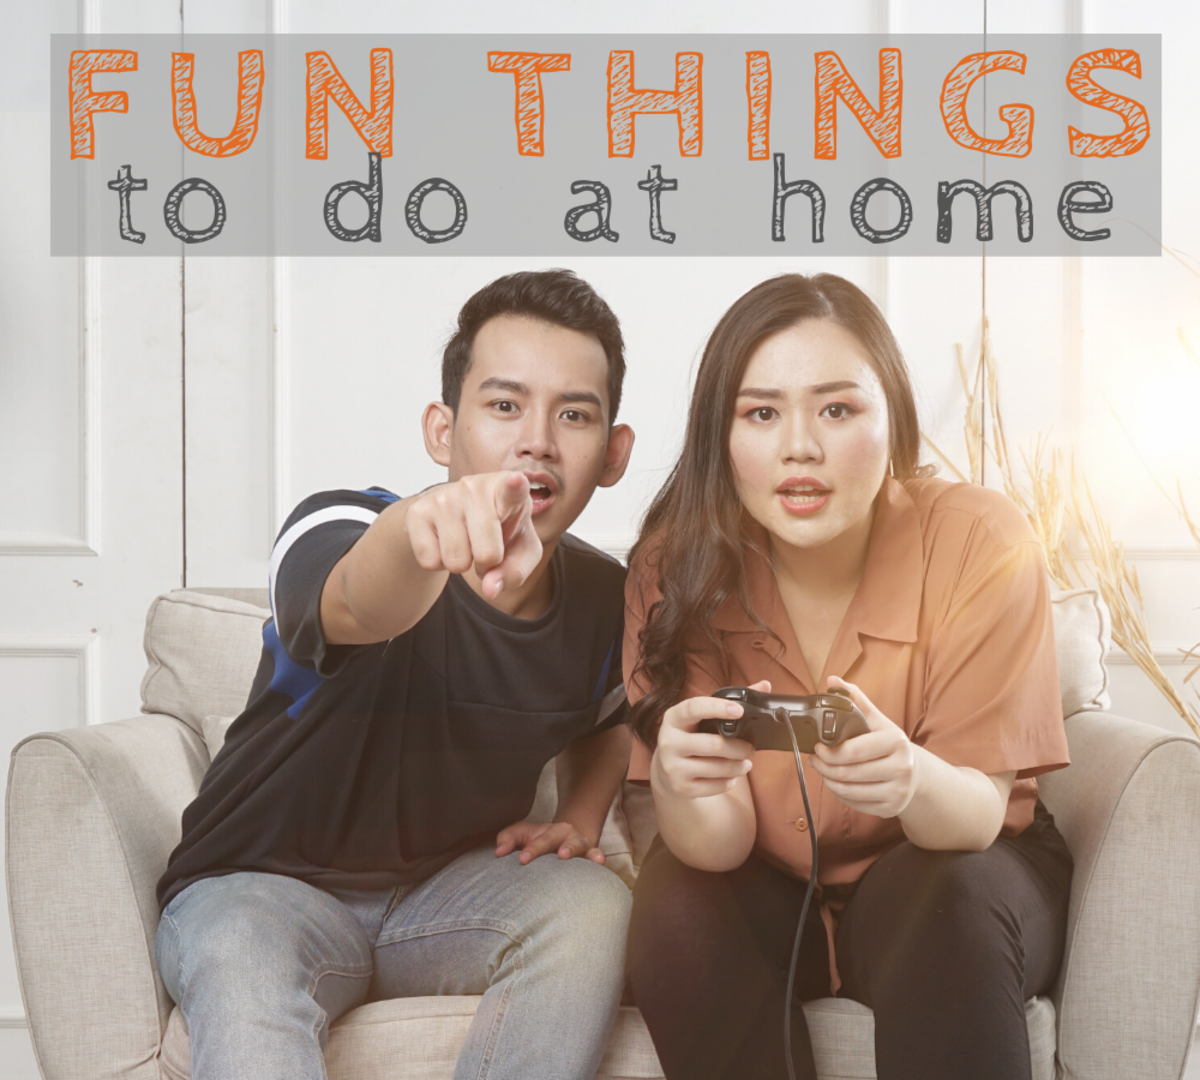 How Couples Can Have Fun at Home